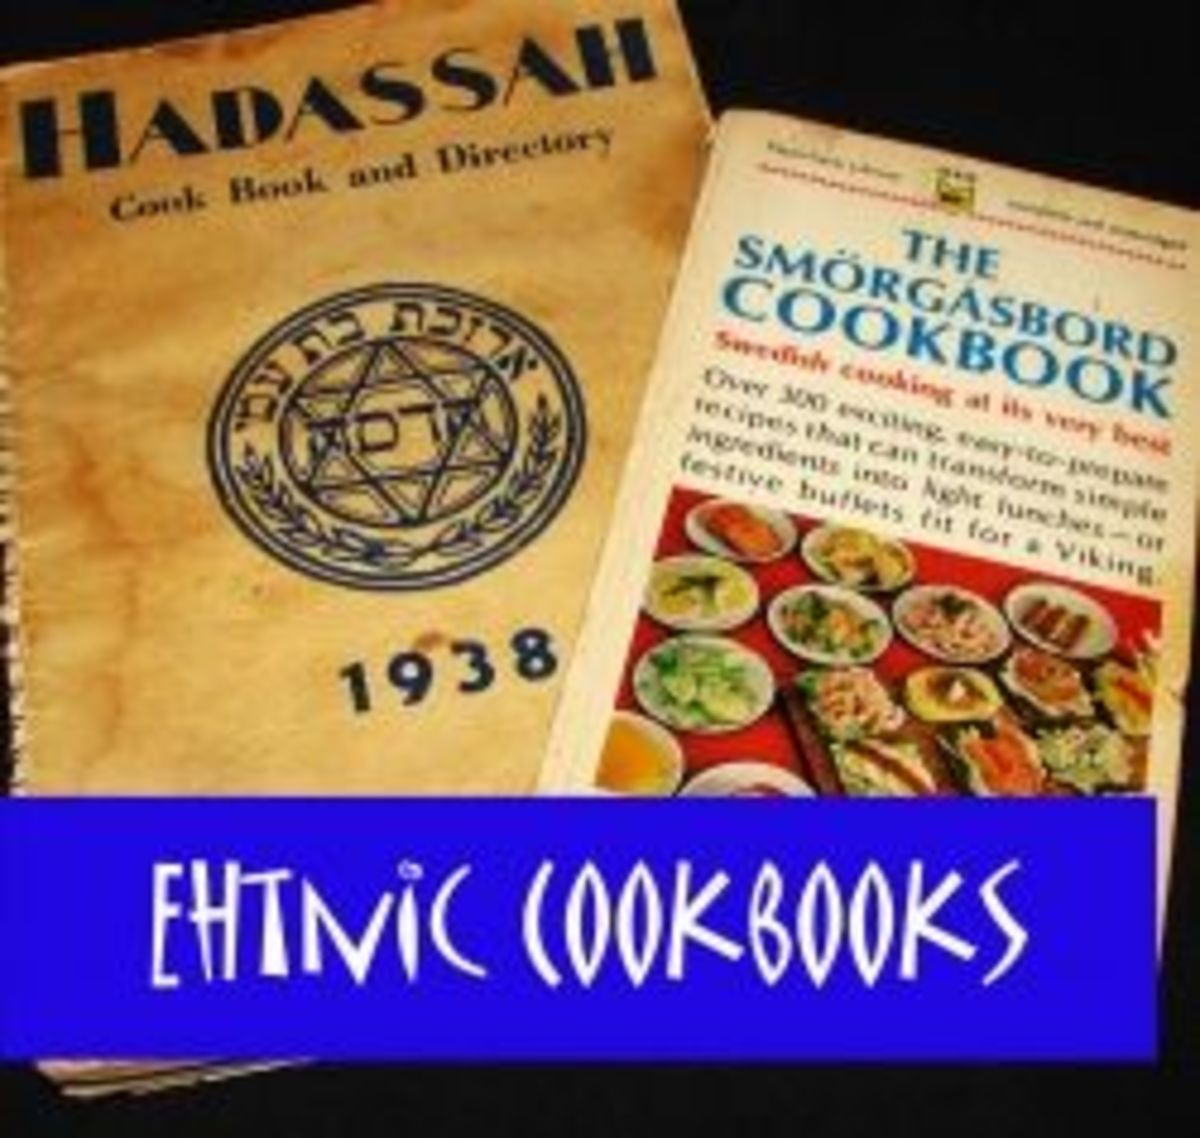 Enthic cookbooks in my collection by Diane Cass